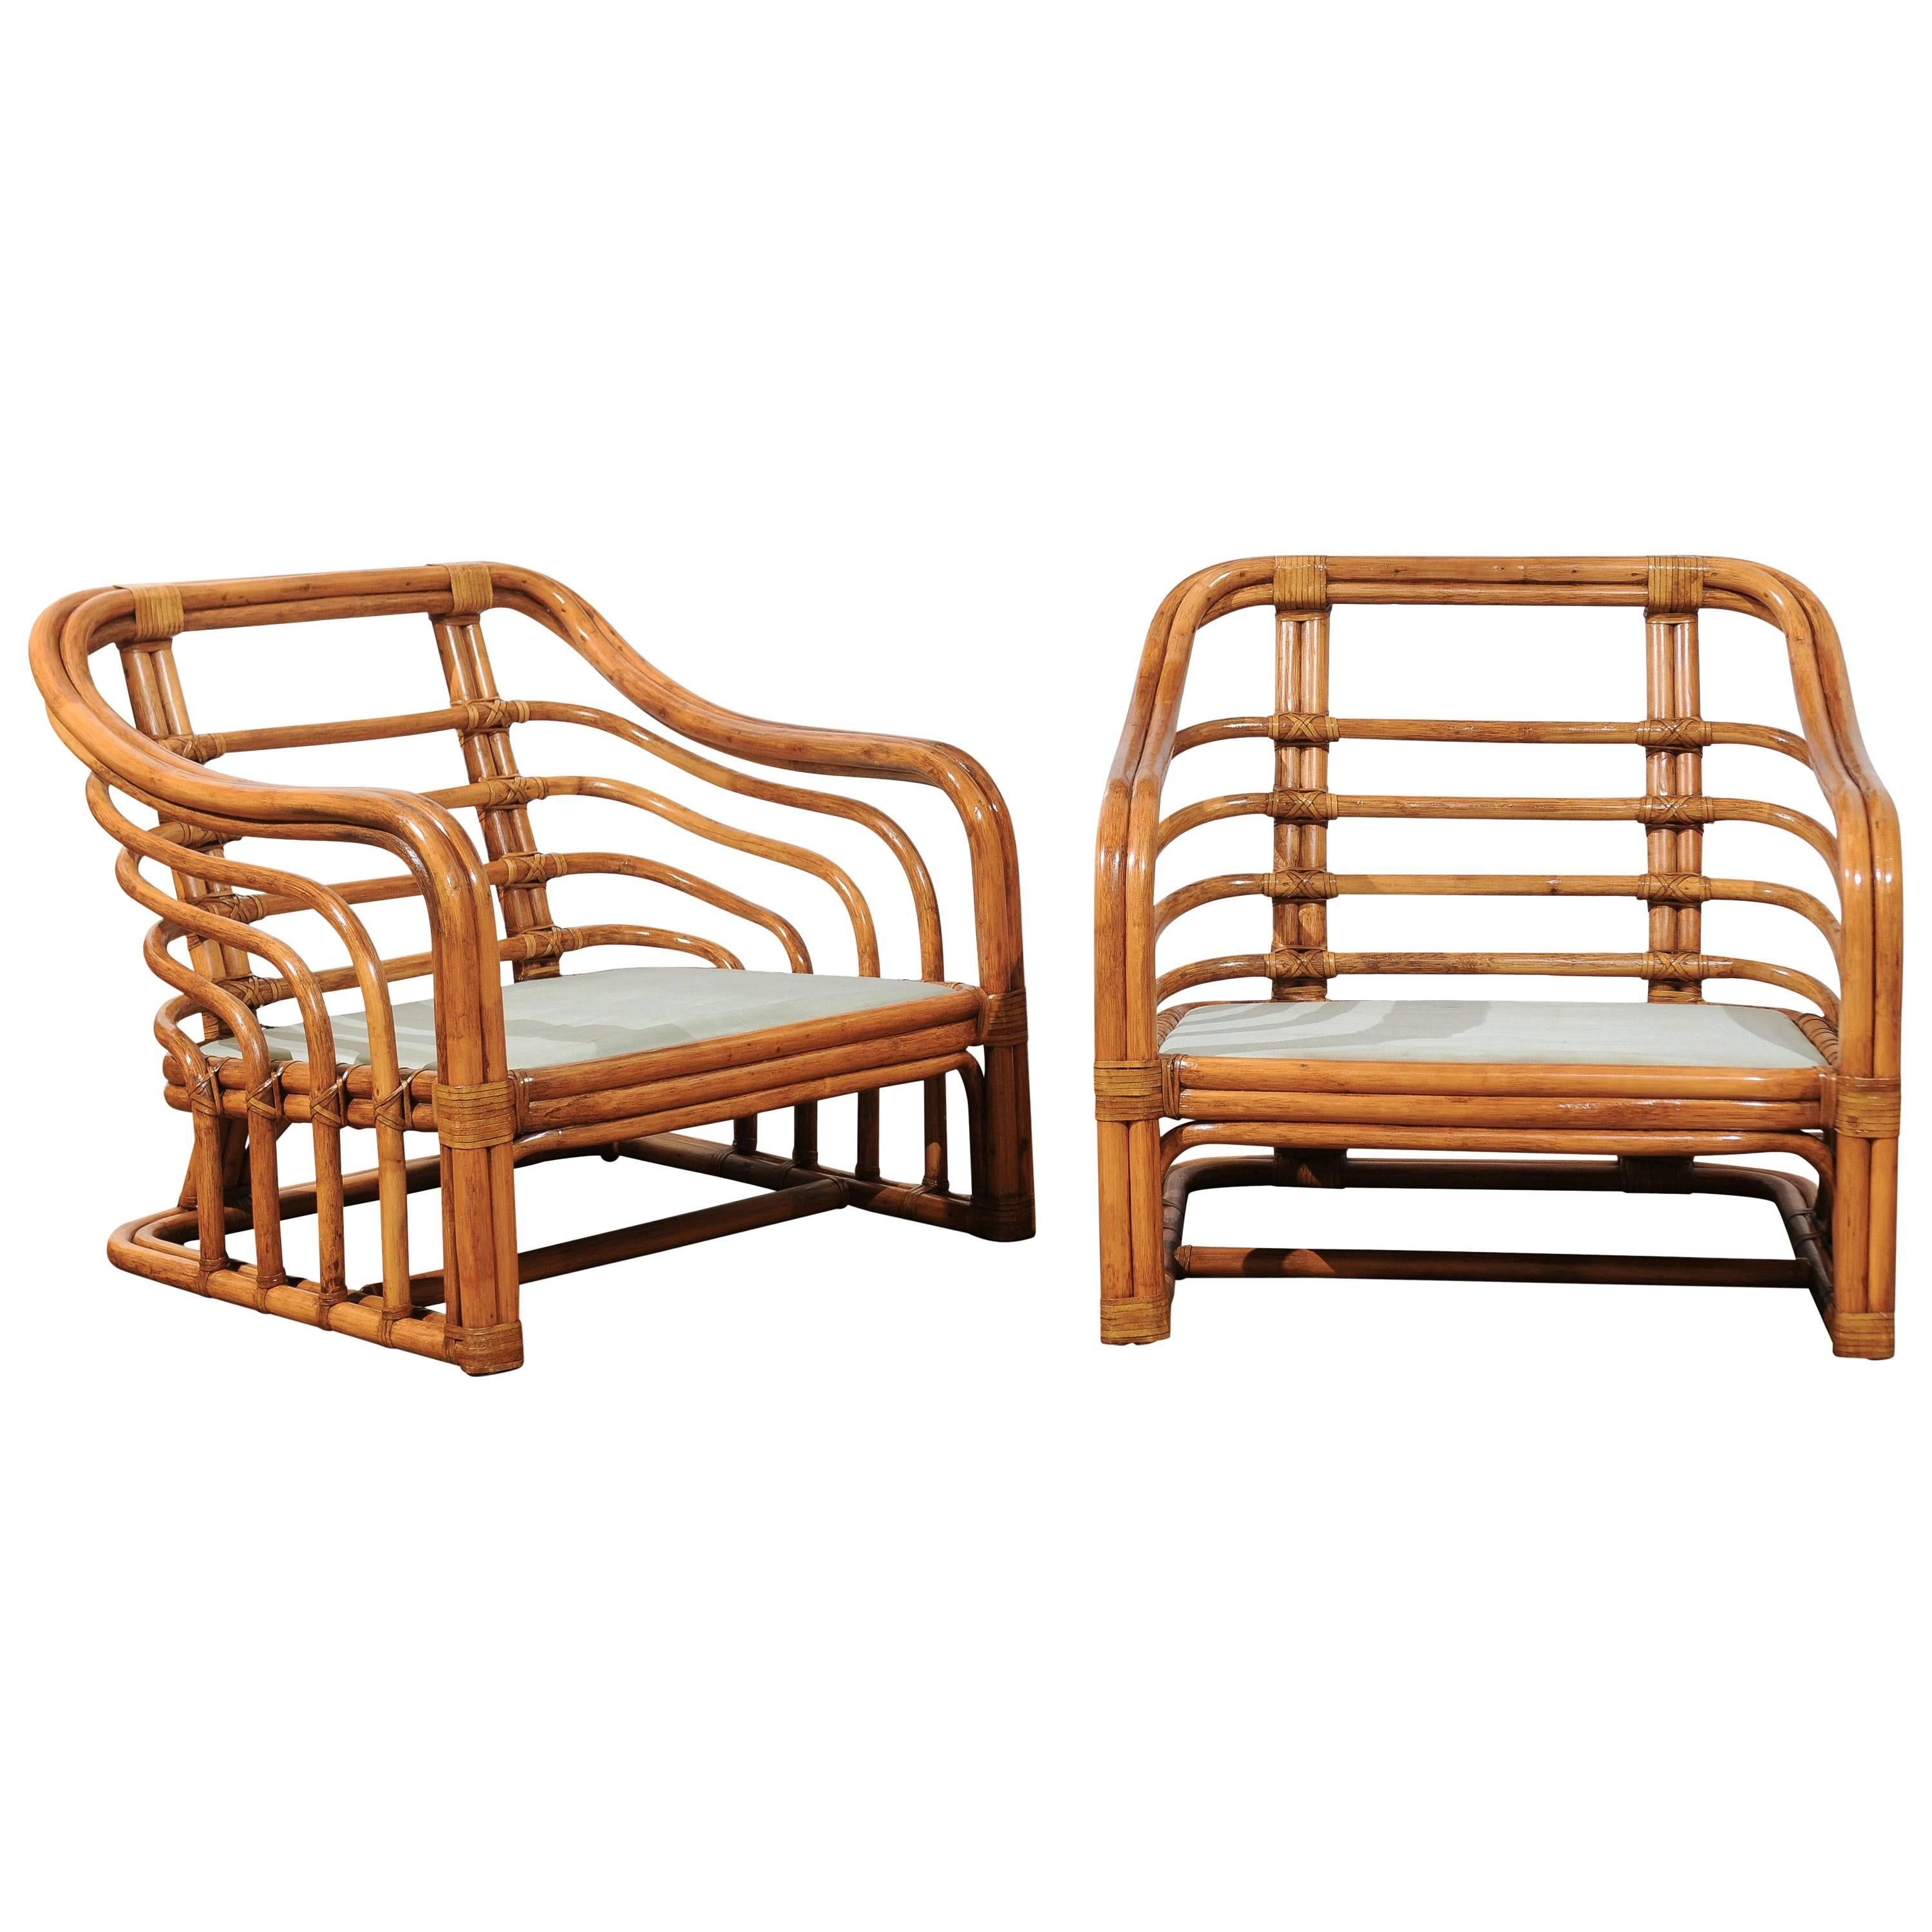 Decorative Restored Pair Of Club Chairs By Brown Jordan, Circa 1980 1